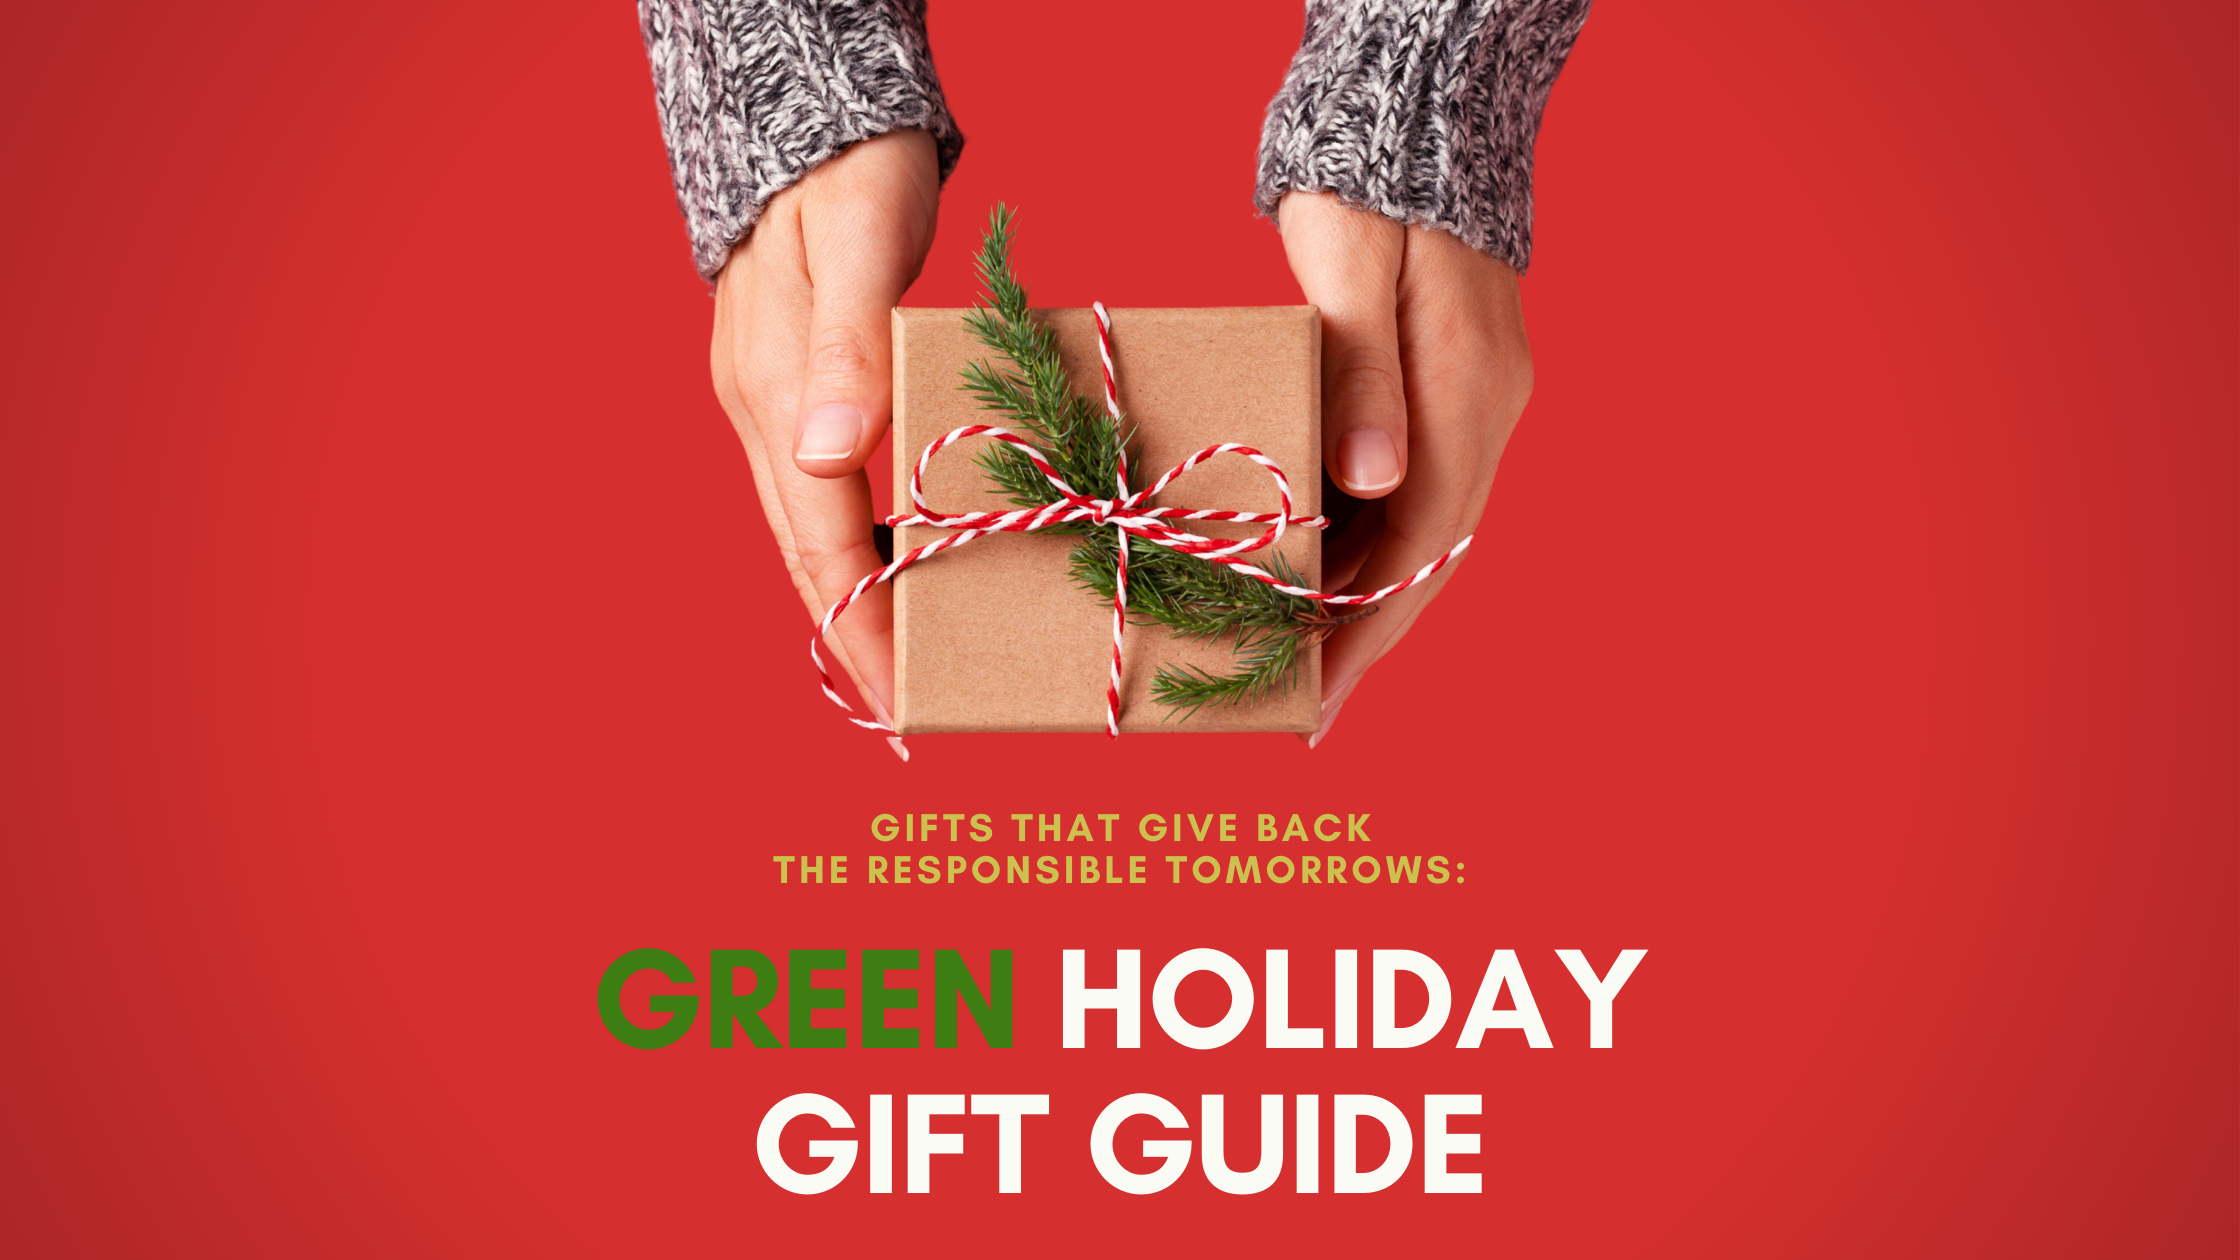 Responsible Tomorrows: Green Holiday Gift Guide